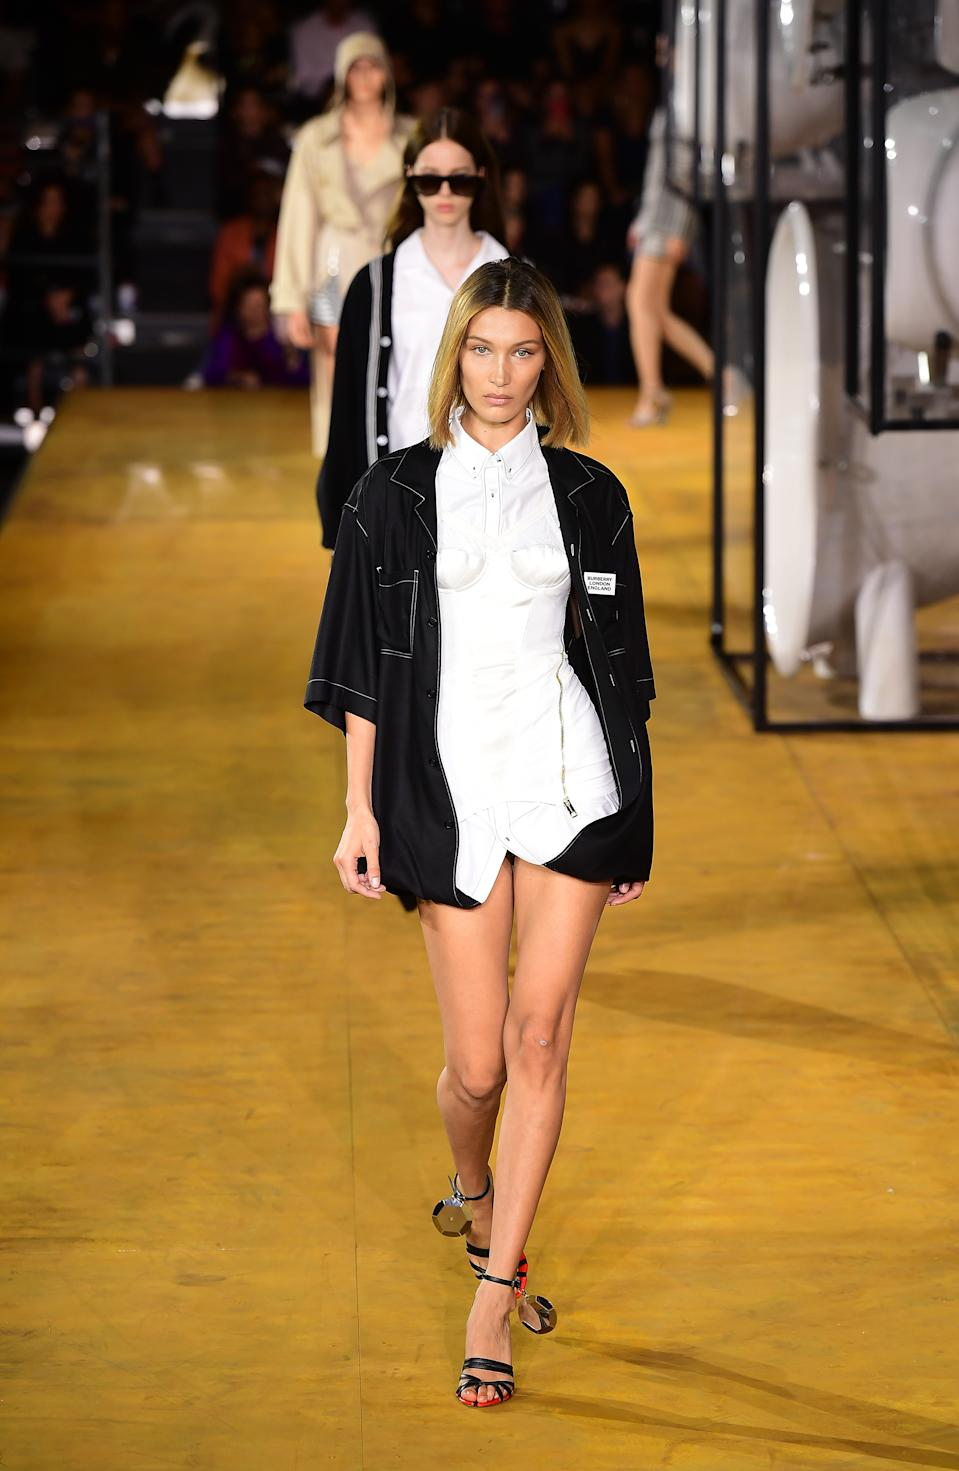 Bella Hadid joined her sister on the catwalk. [Photo: PA]